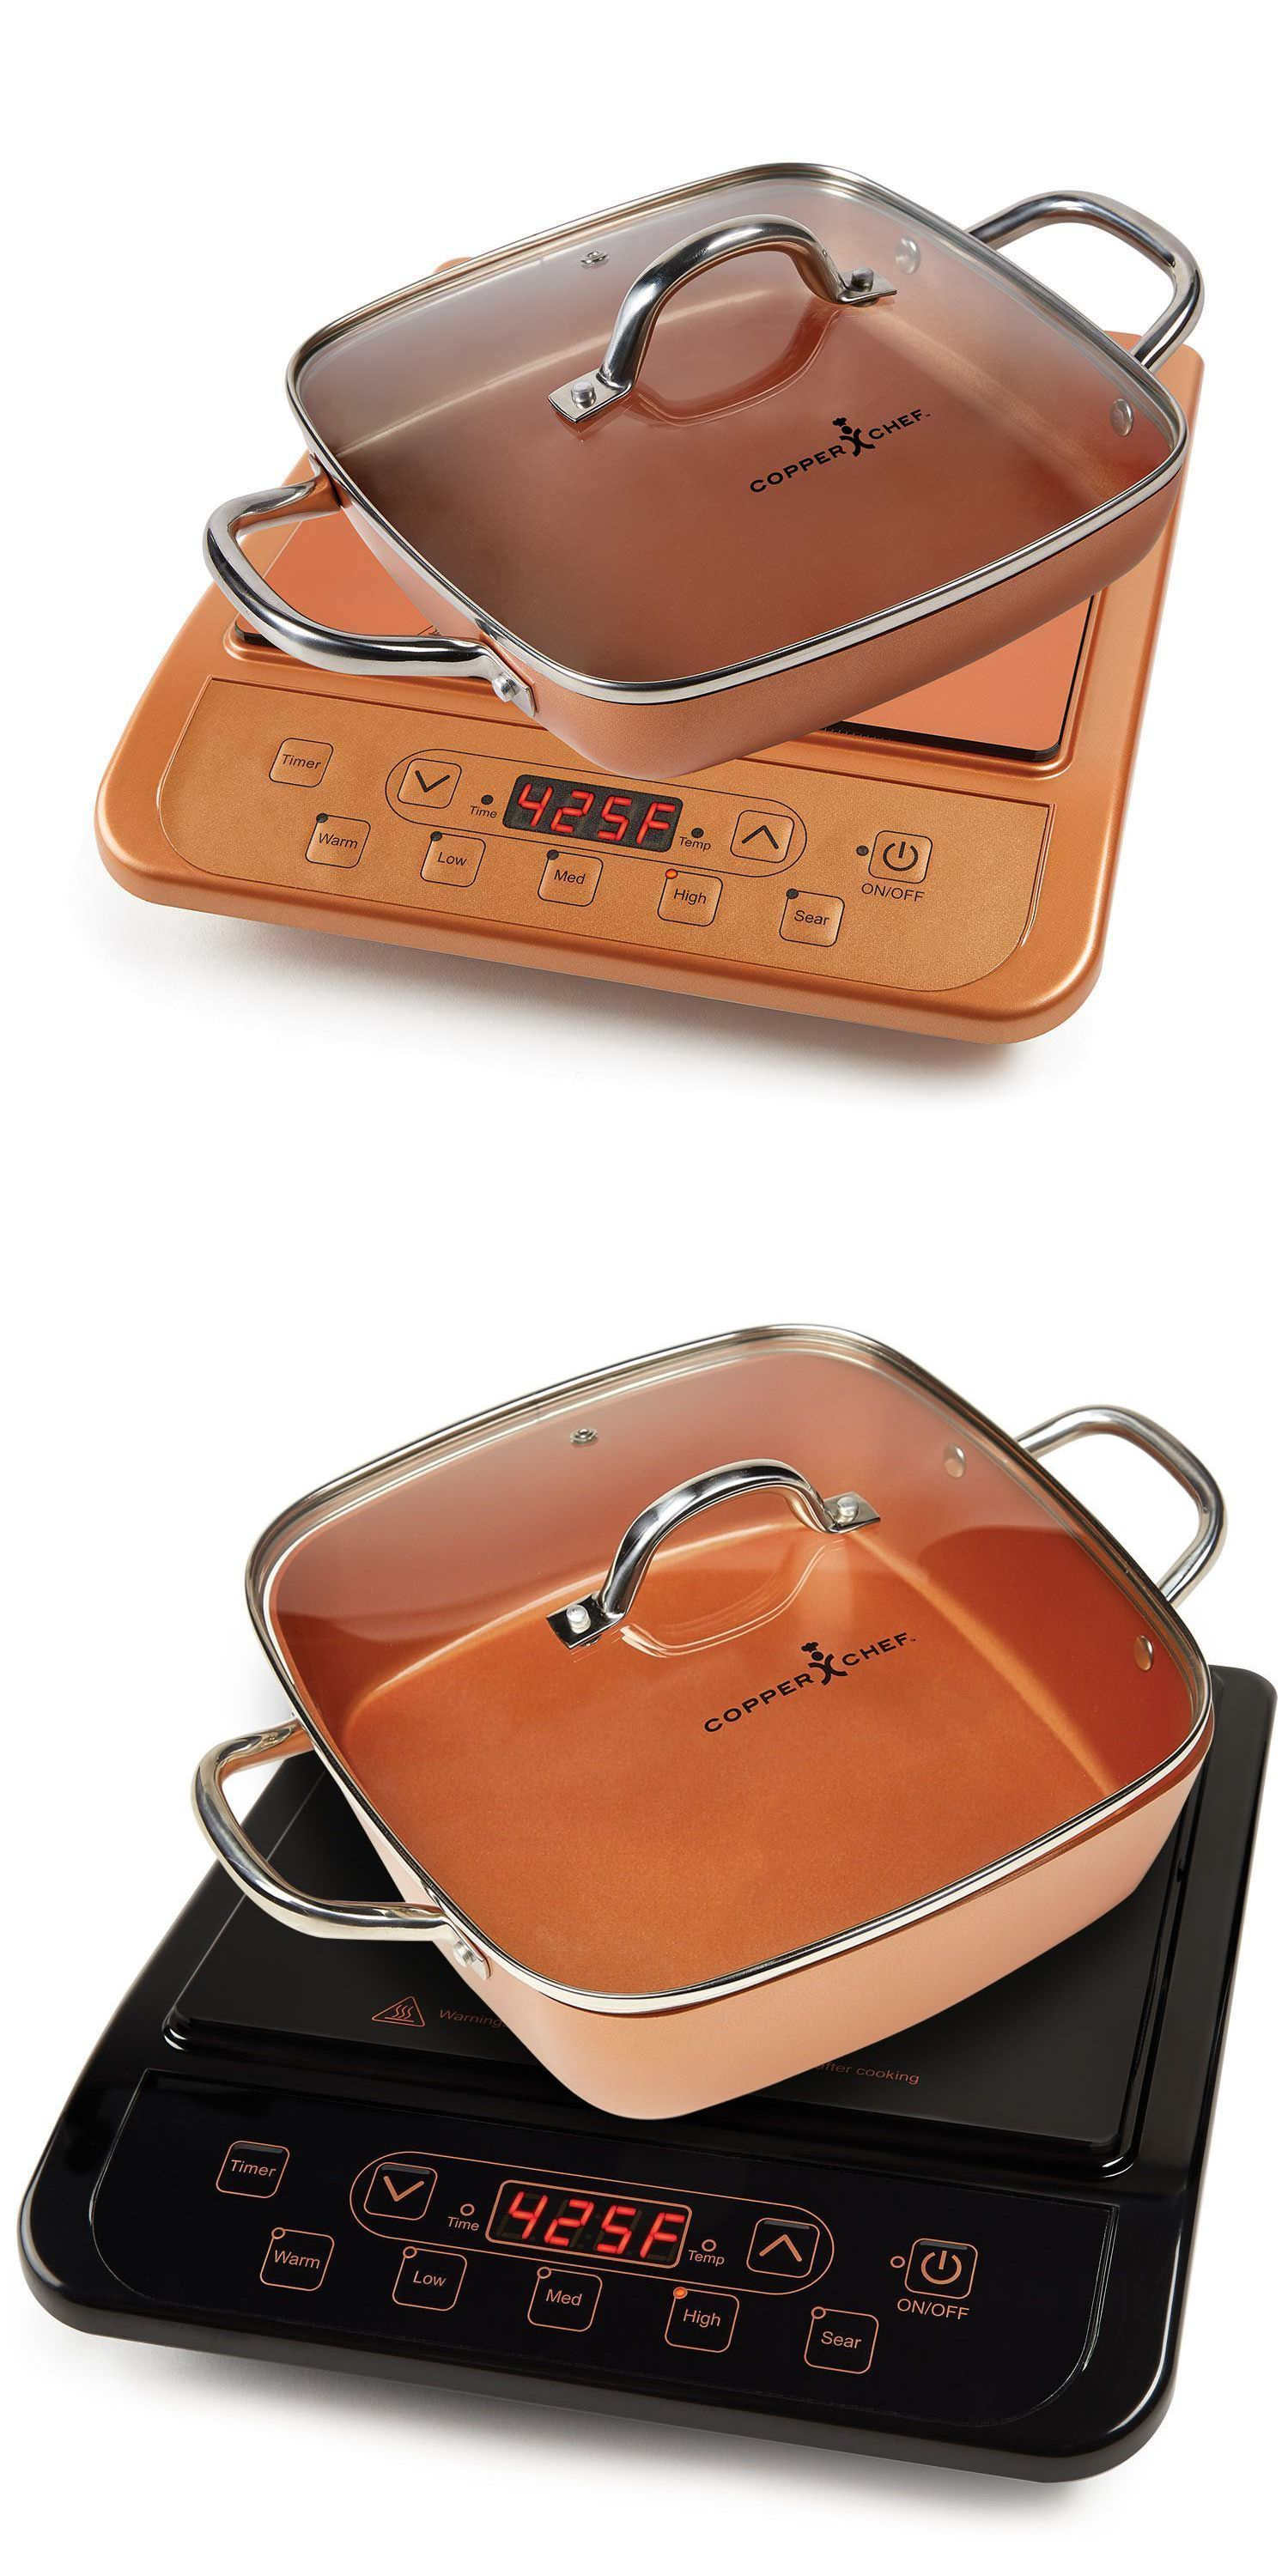 Copper Chef Induction Cooktop With 11 Casserole Pan Assorted Colors Induction Cookware Copper Chef Induction Cooktop